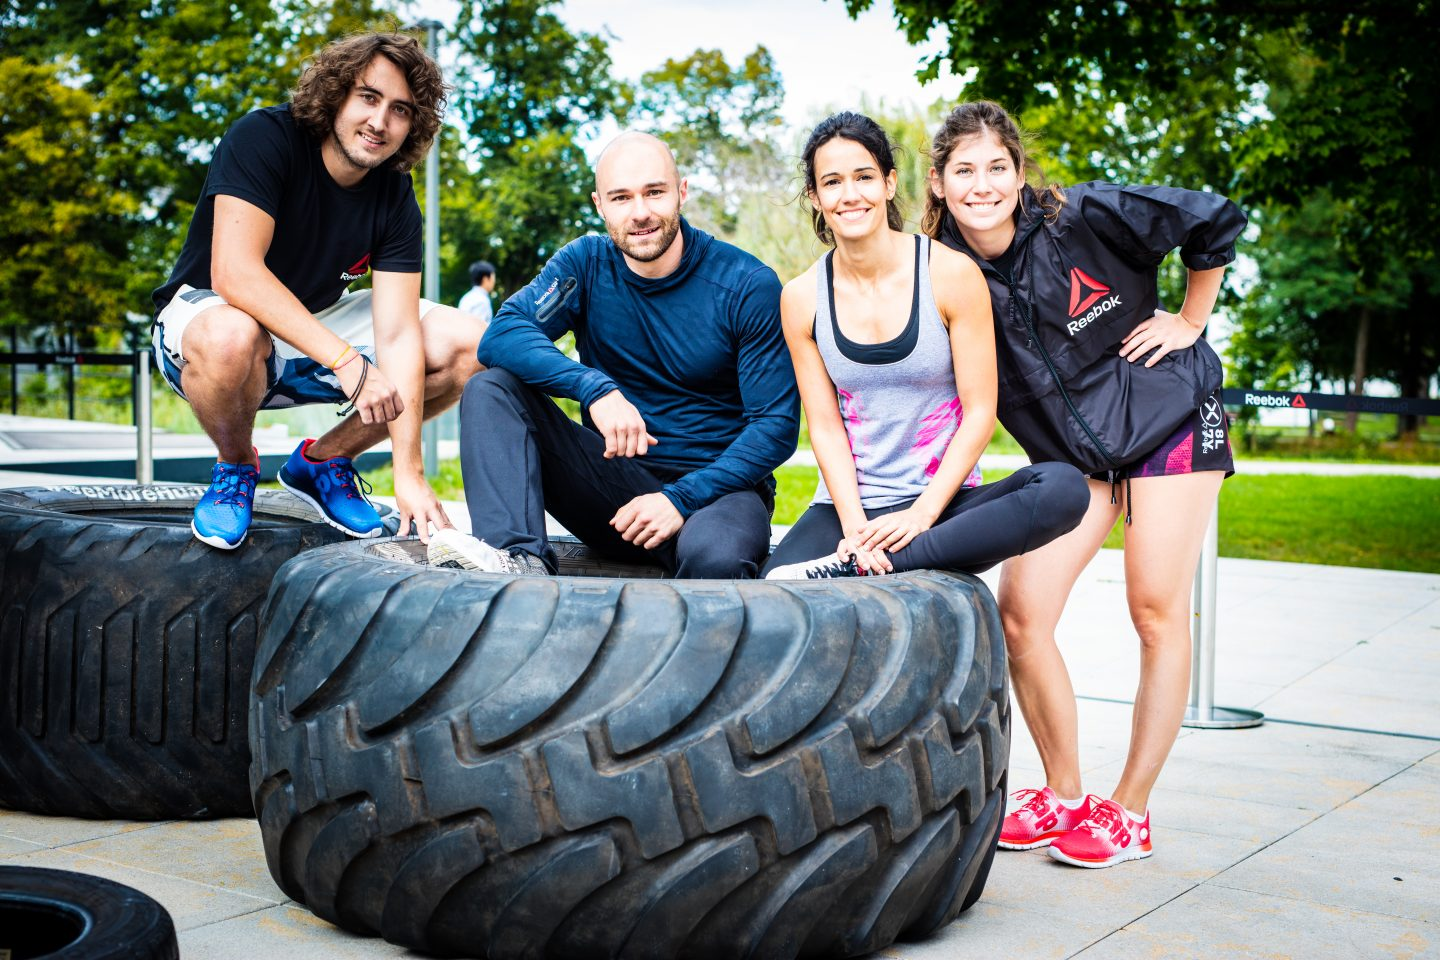 A group of friends resting on two large tires after a great workout.